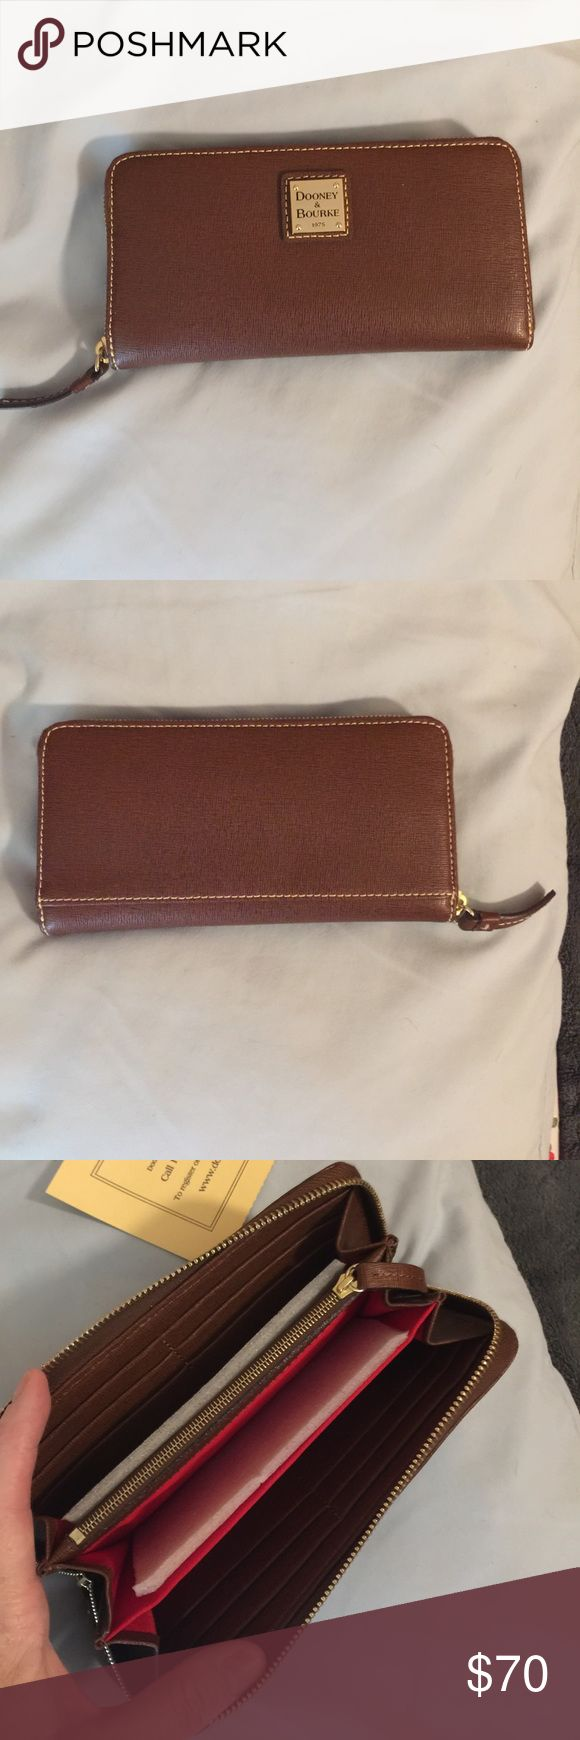 Dooney & Bourke Wallet Dooney & Bourke Large Zip around Wallet. NWT. Color is called Amber, it's a rich brown. Wallet is nwt and in perfect condition. No trades. 8x4x1. Dooney & Bourke Bags Wallets